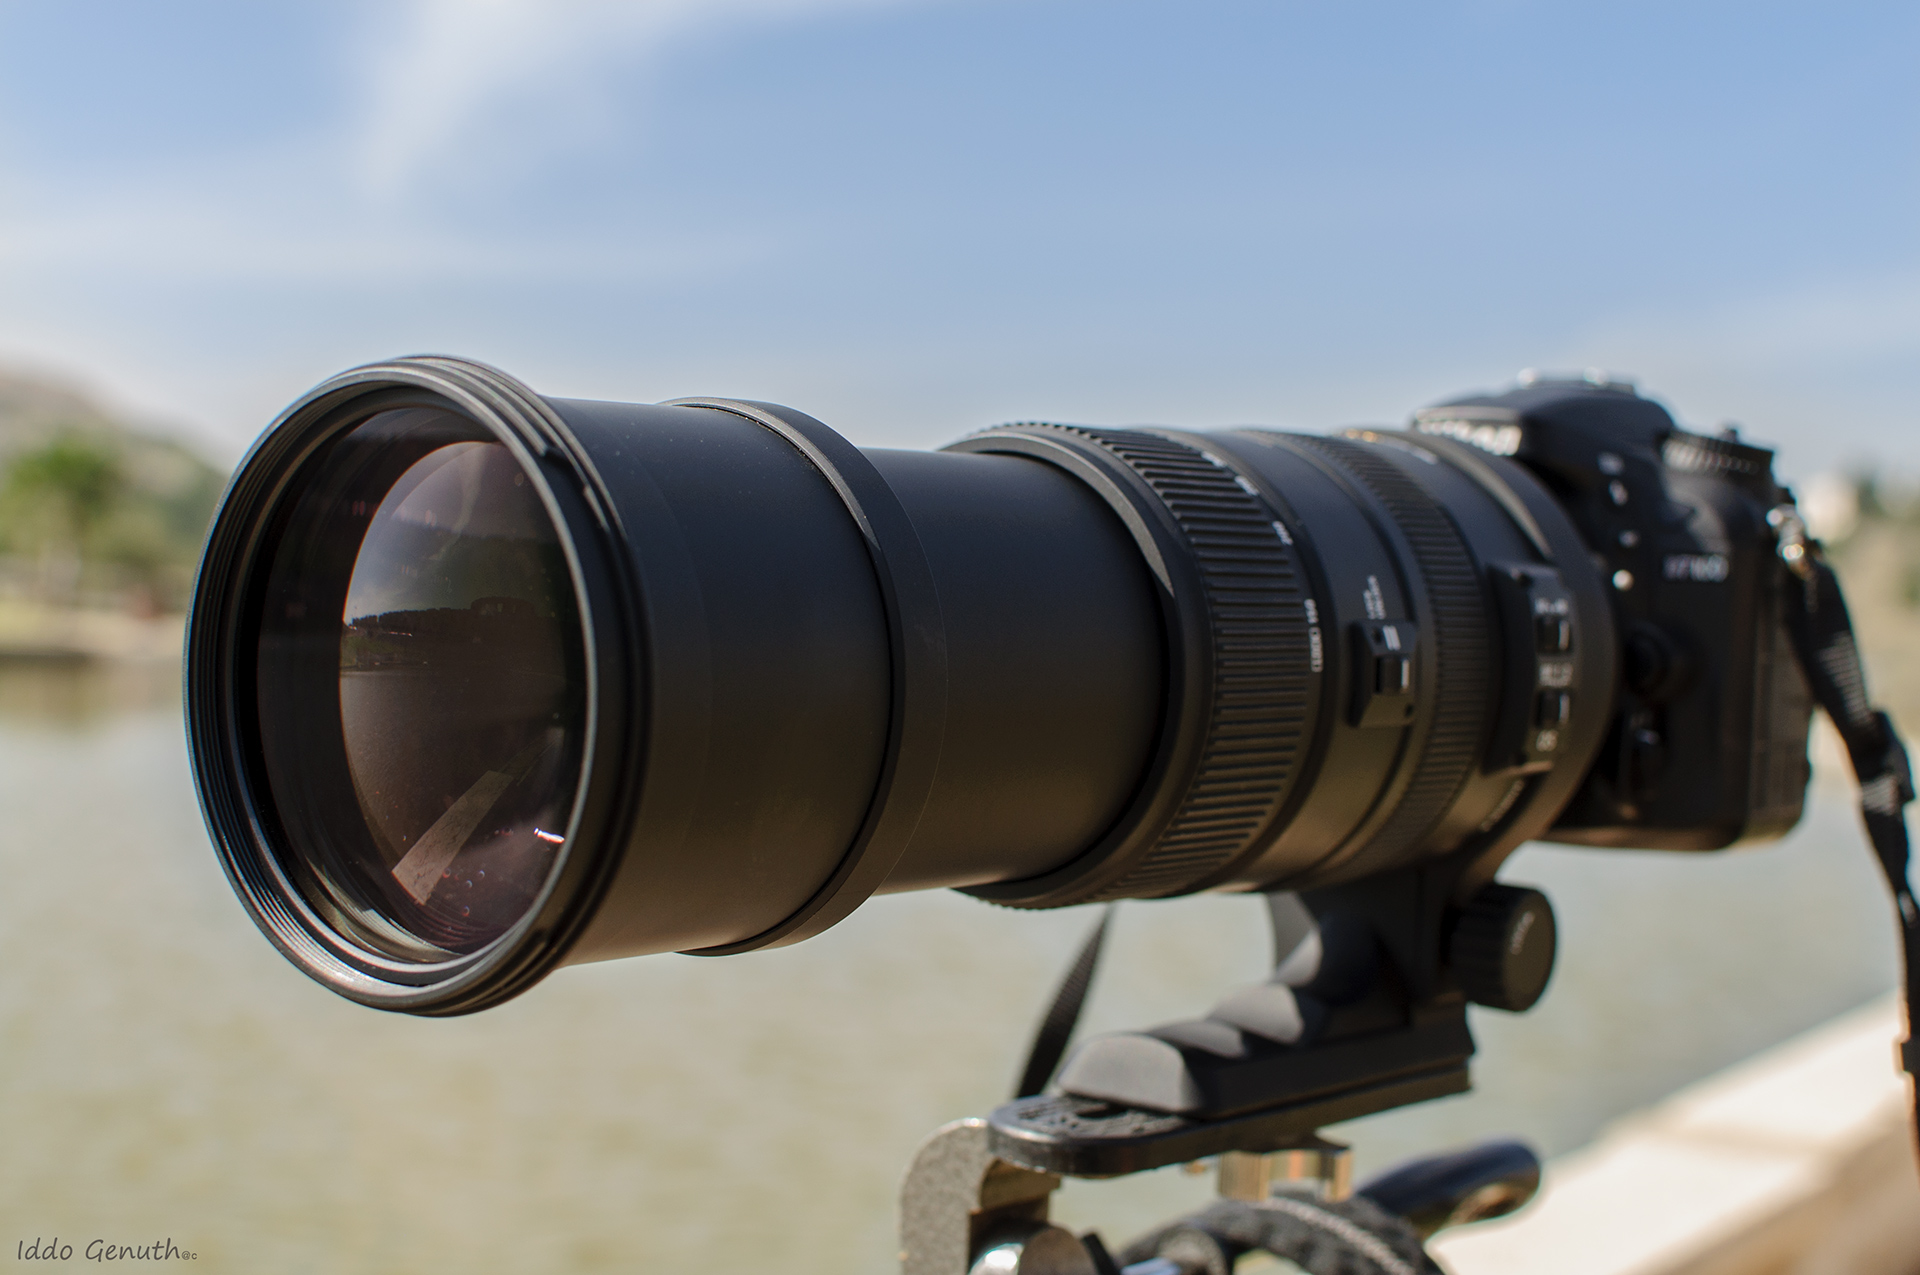 Fabulous 2008 Sigma Announced A New Low Lens Apo Dg Os Lens Was To Lensvid Sigma Apo Dg Os Hsm Review Sigma 150 500mm F5 6 3 Dg Apo Os Sigma 150 500mm Review Youtube Some Background Back dpreview Sigma 150 500mm